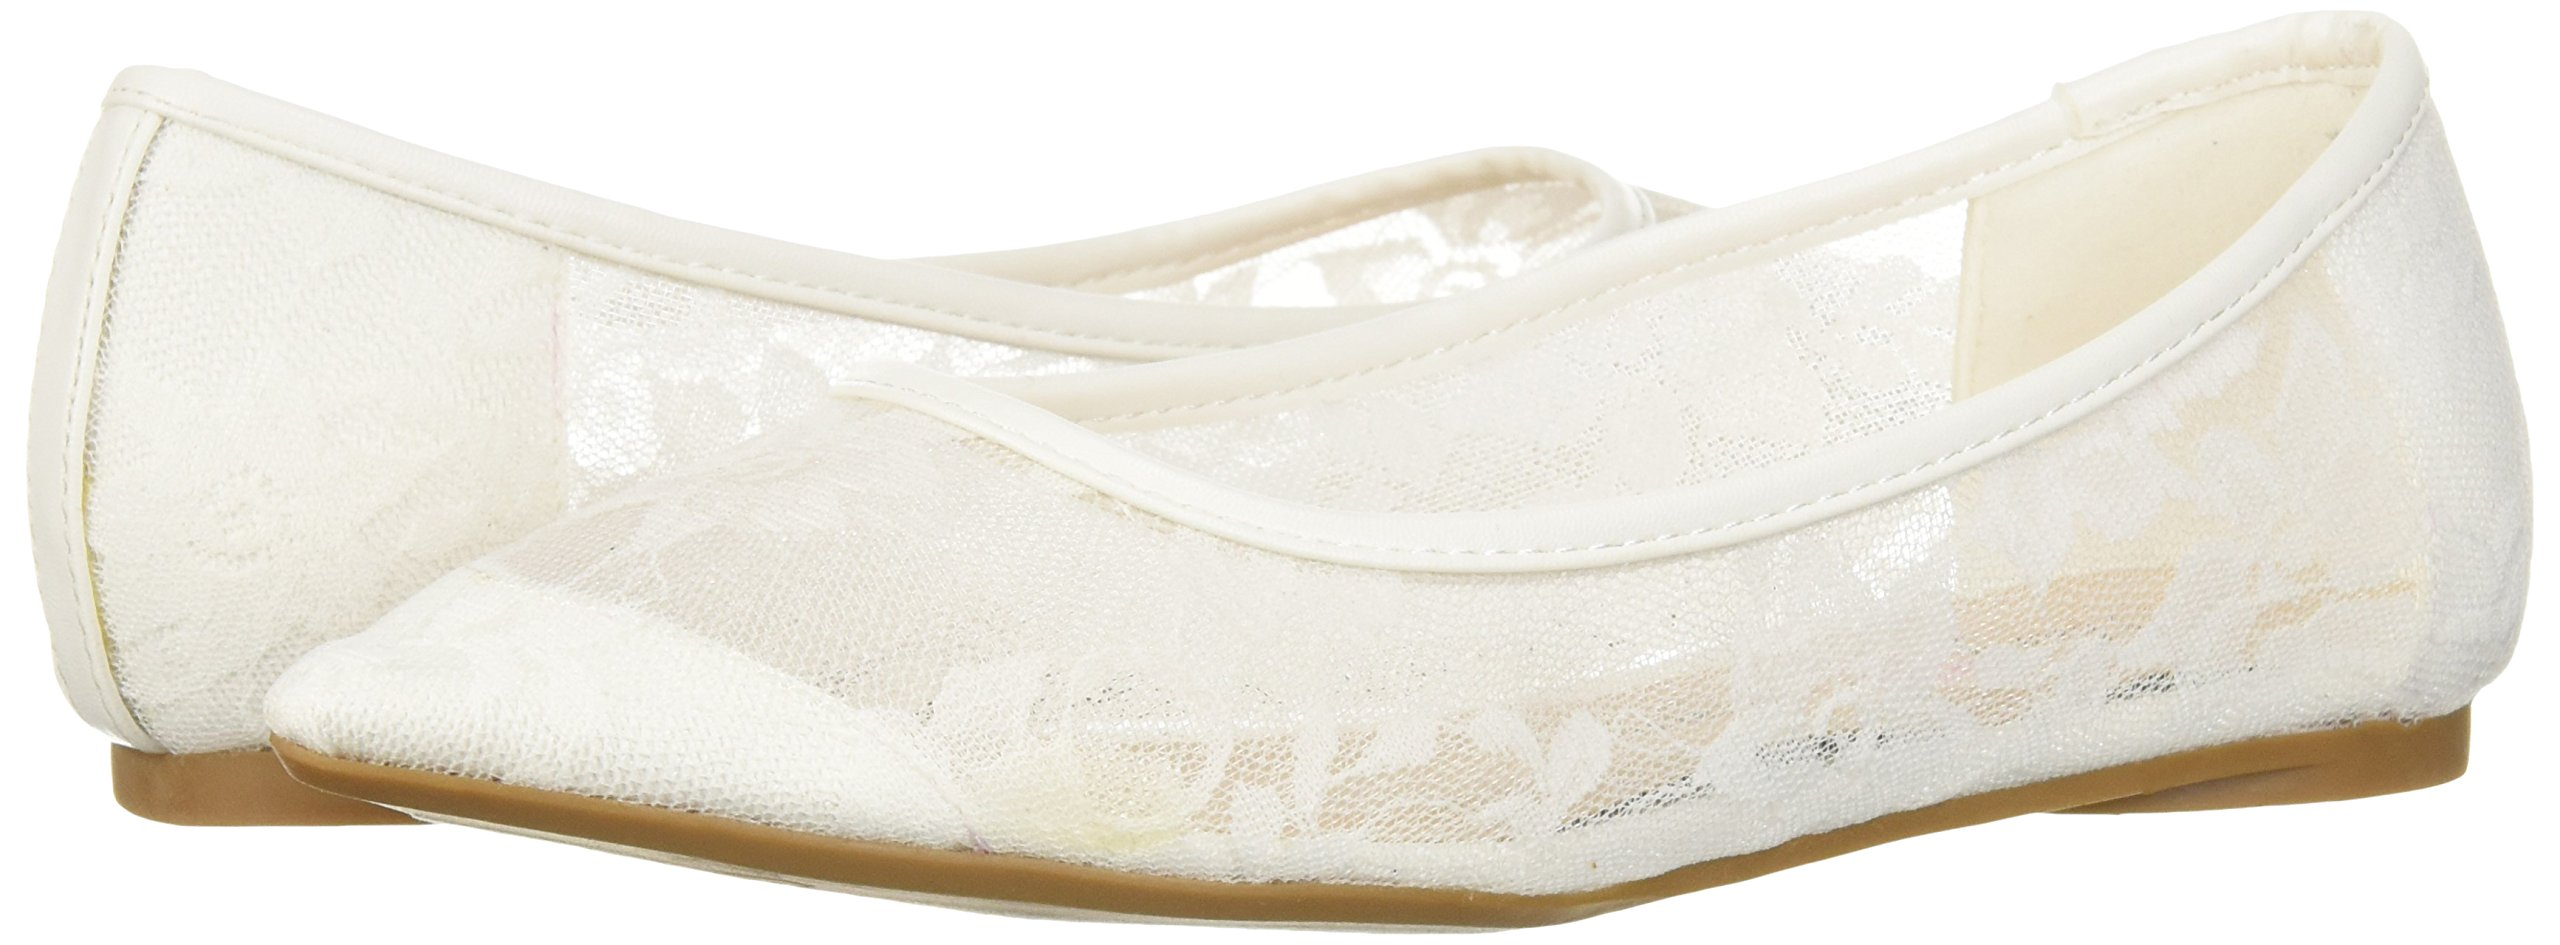 Penny Loves Kenny Women's Knot FL Ballet Flat, White Lace, 9 Medium US by Penny Loves Kenny (Image #5)